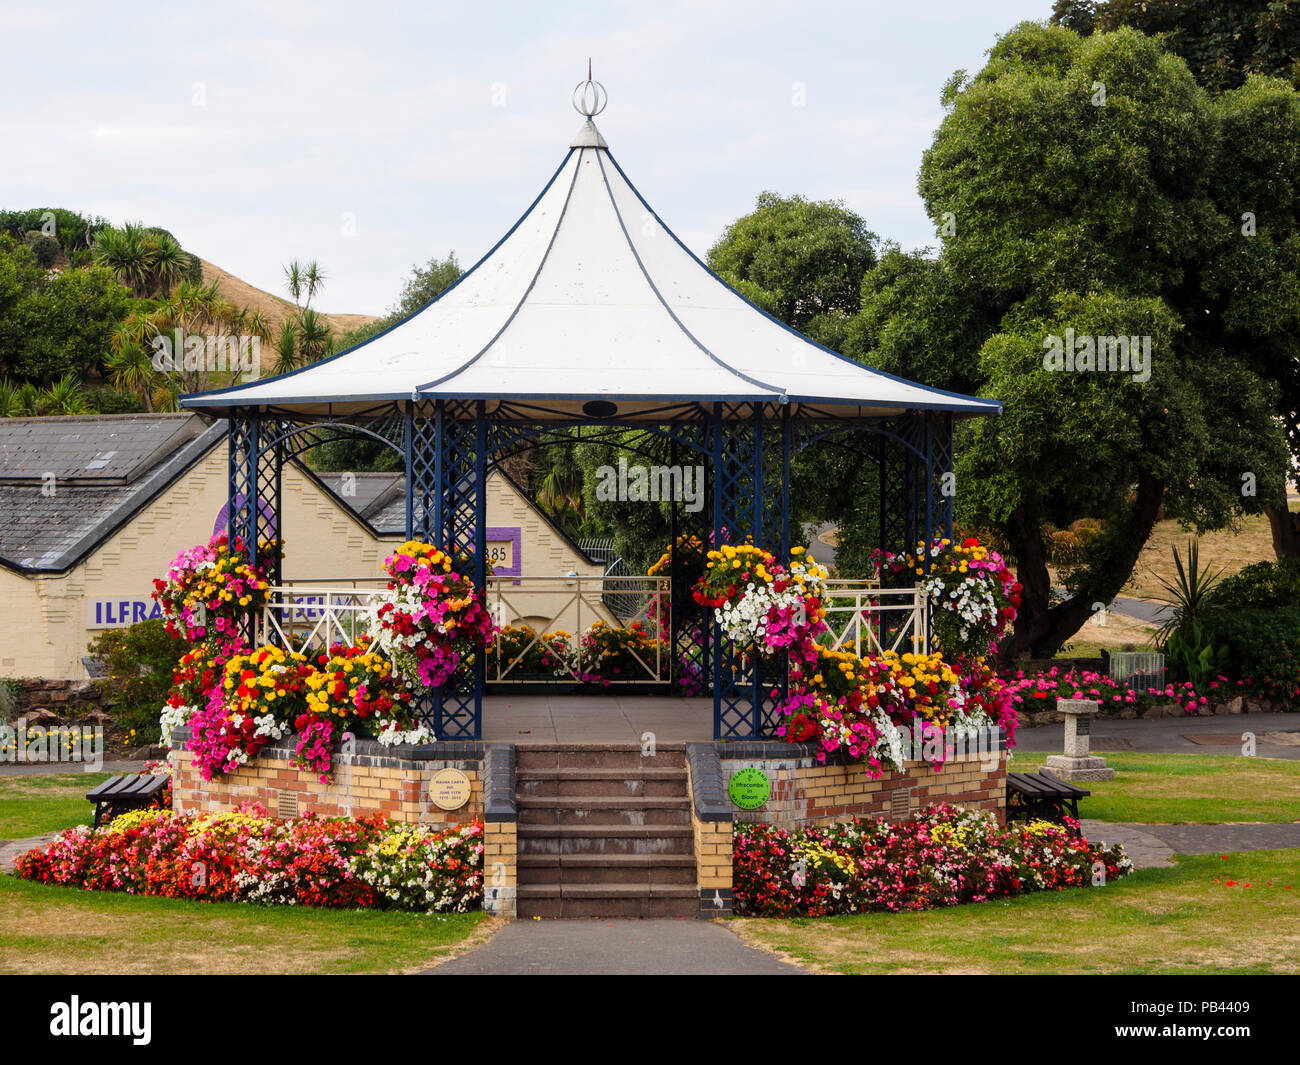 Summer bedding flowers bedeck the Victorian bandstand in Runnymede Gardens, Ilfracombe, Devon, UK Stock Photo